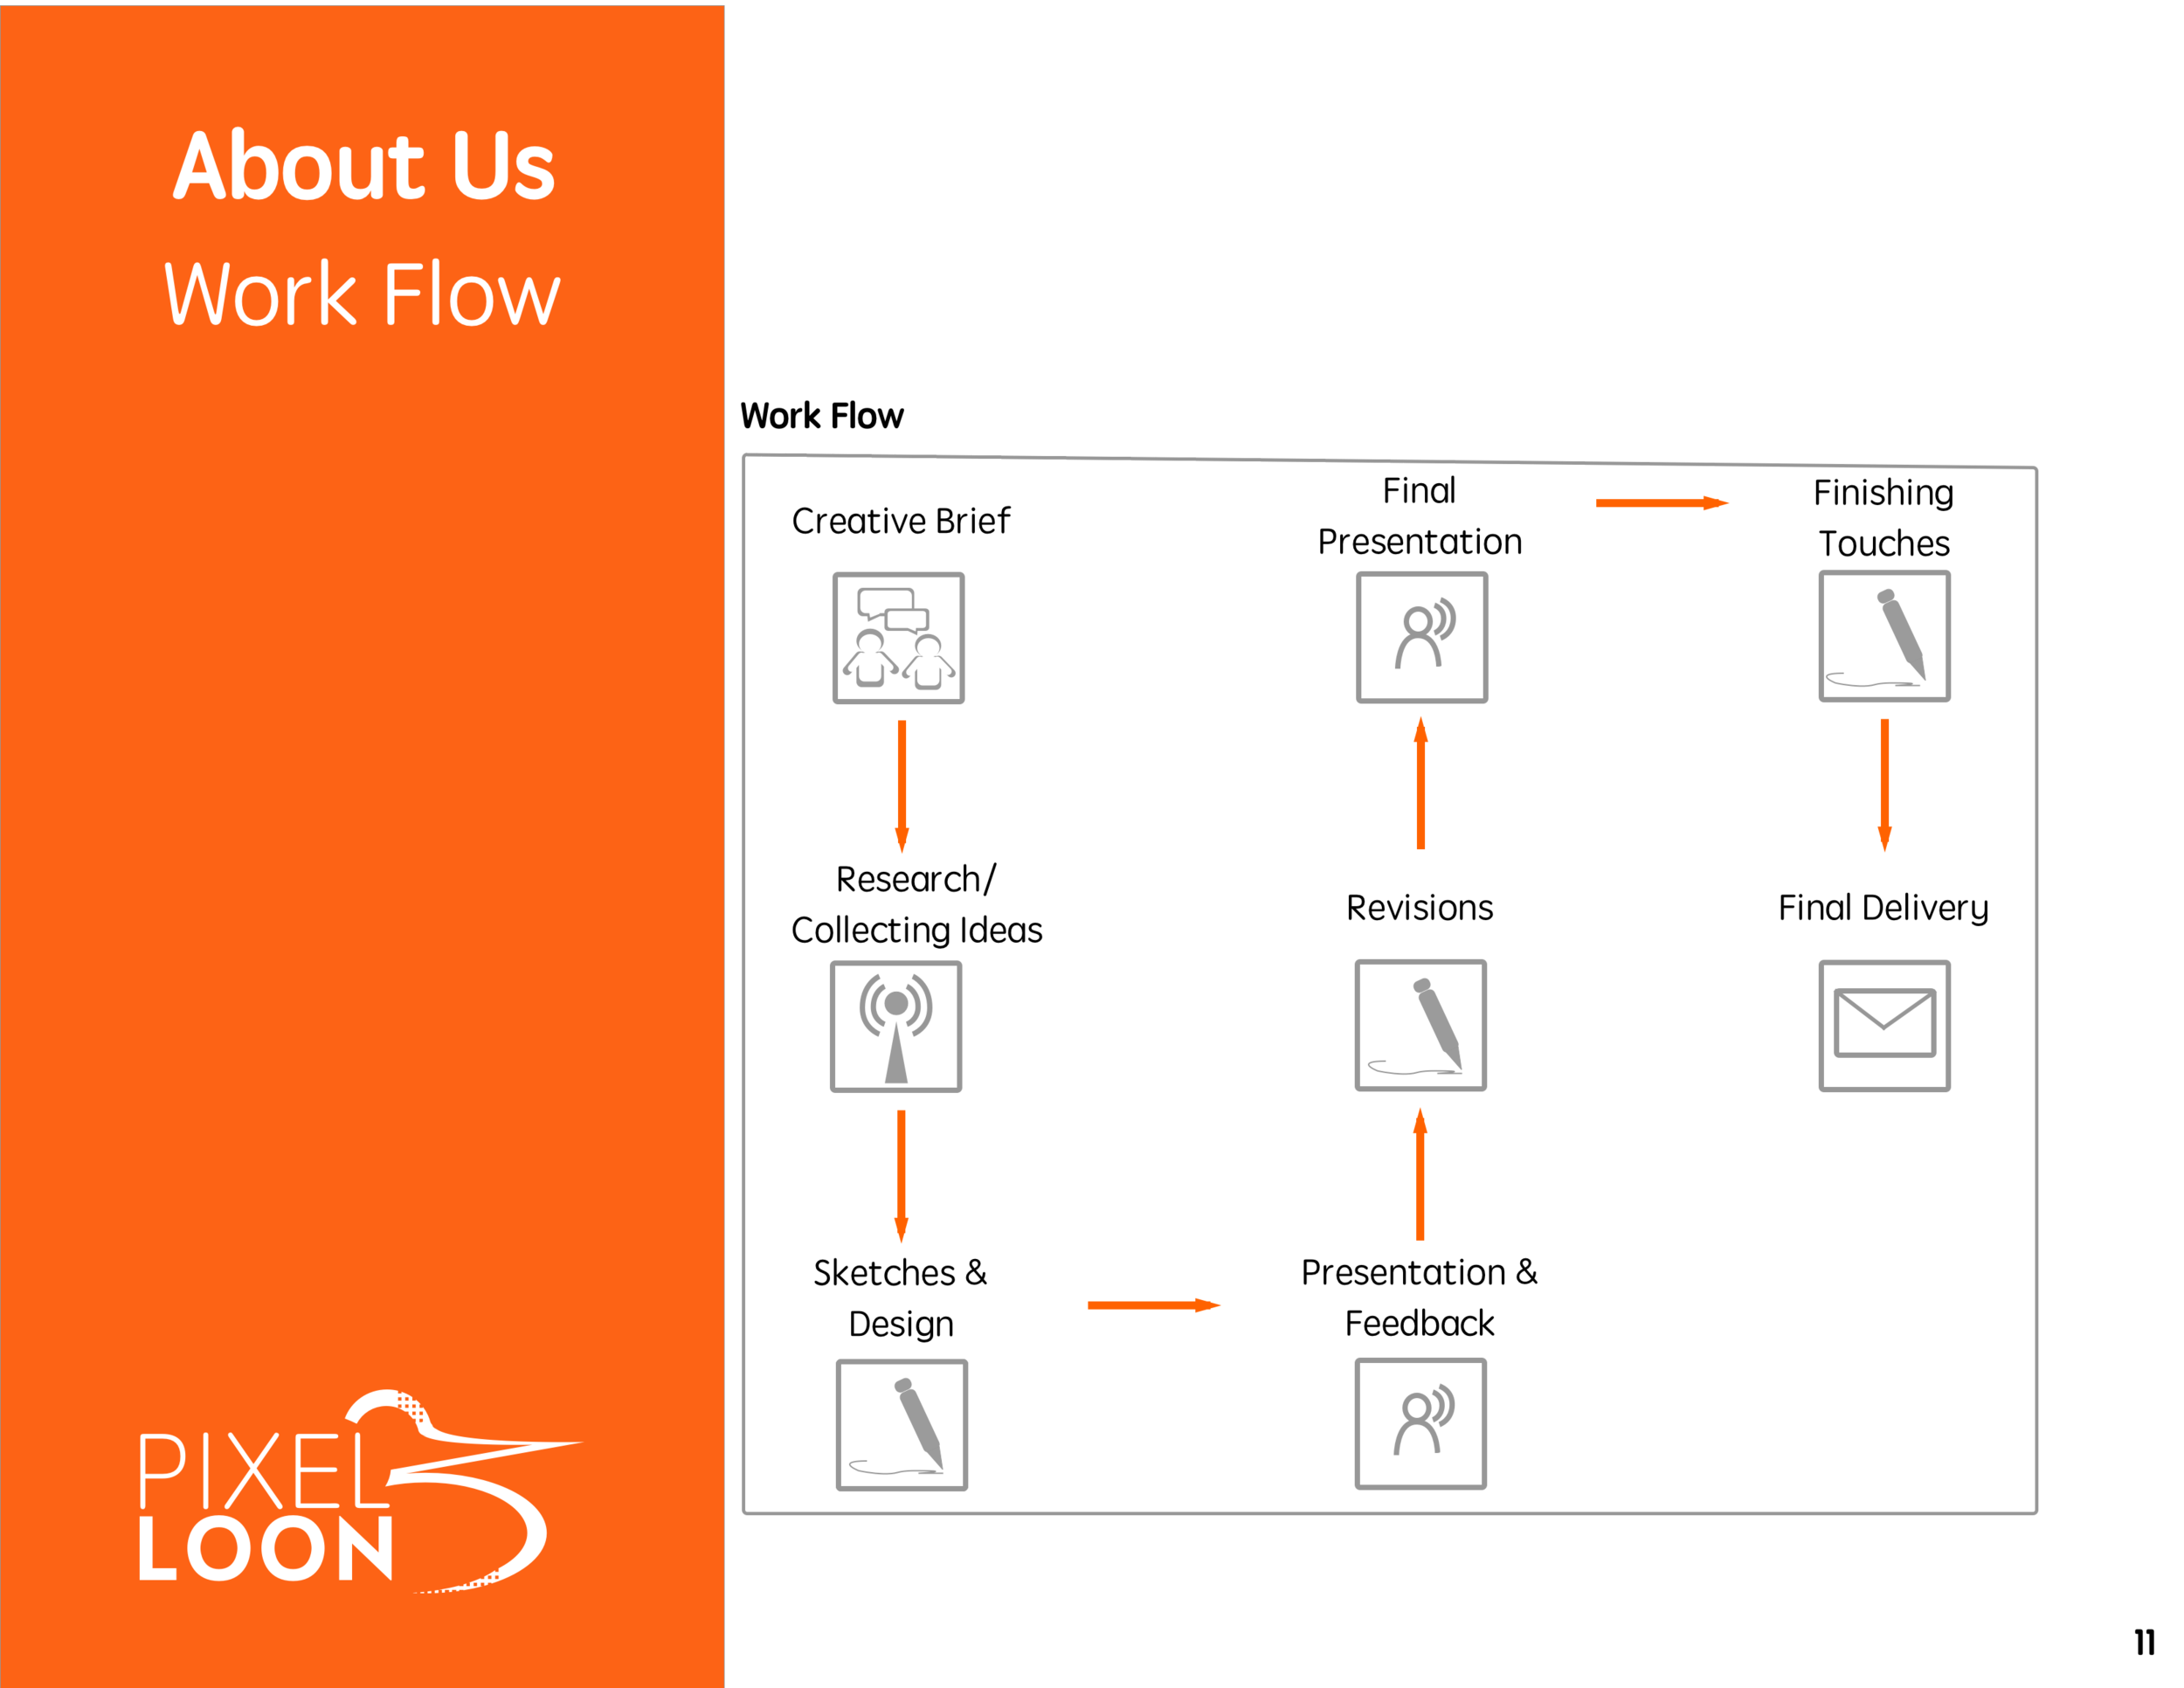 Our workflow is flexible and we encourage feedback and collaboration during the entire process to ensure your end product perfectly brings your brand personality to life.